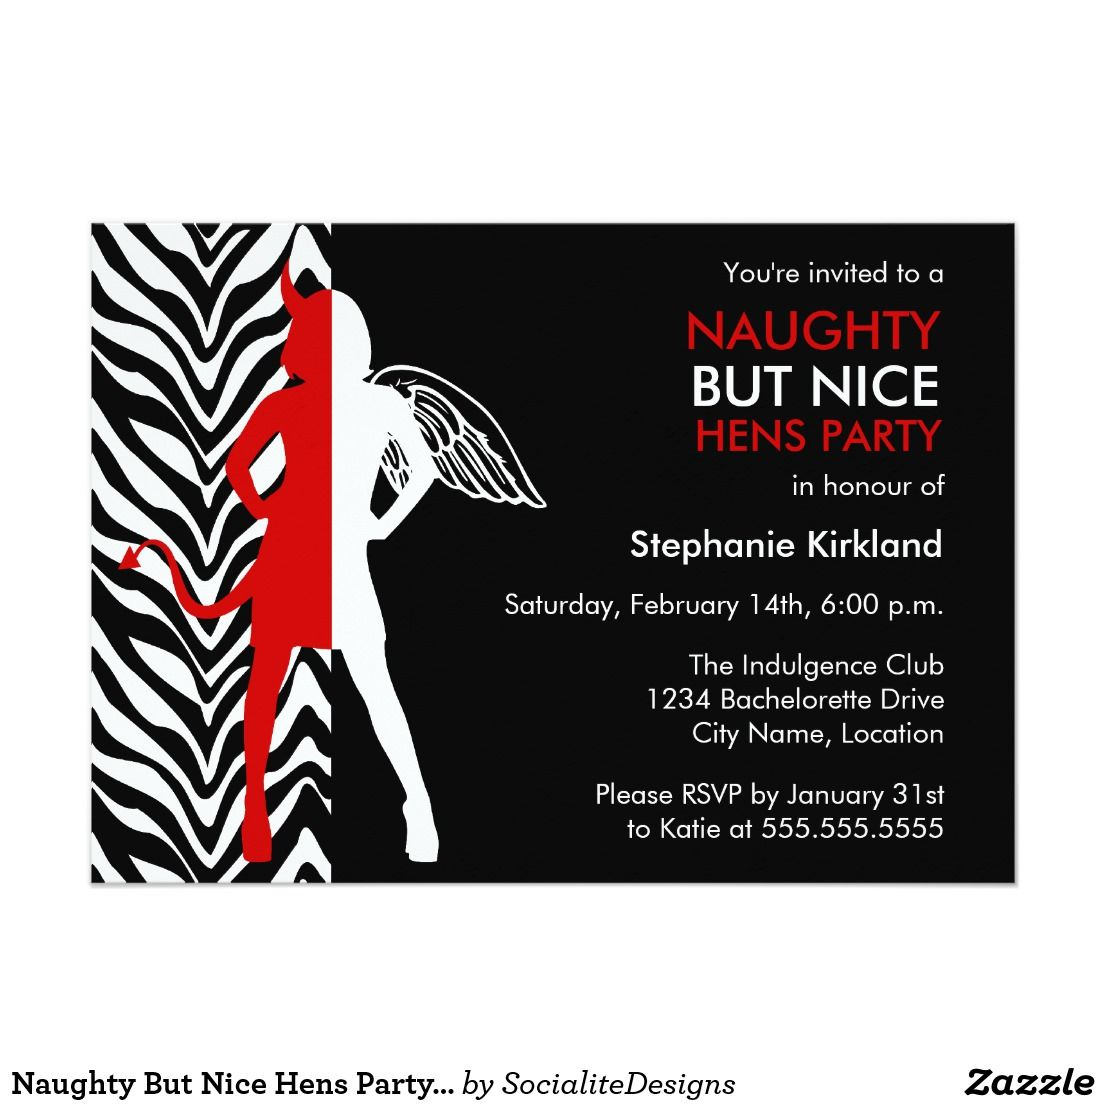 Naughty but nice hens party bachelorette party bachelorette naughty but nice hens party bachelorette party monicamarmolfo Image collections